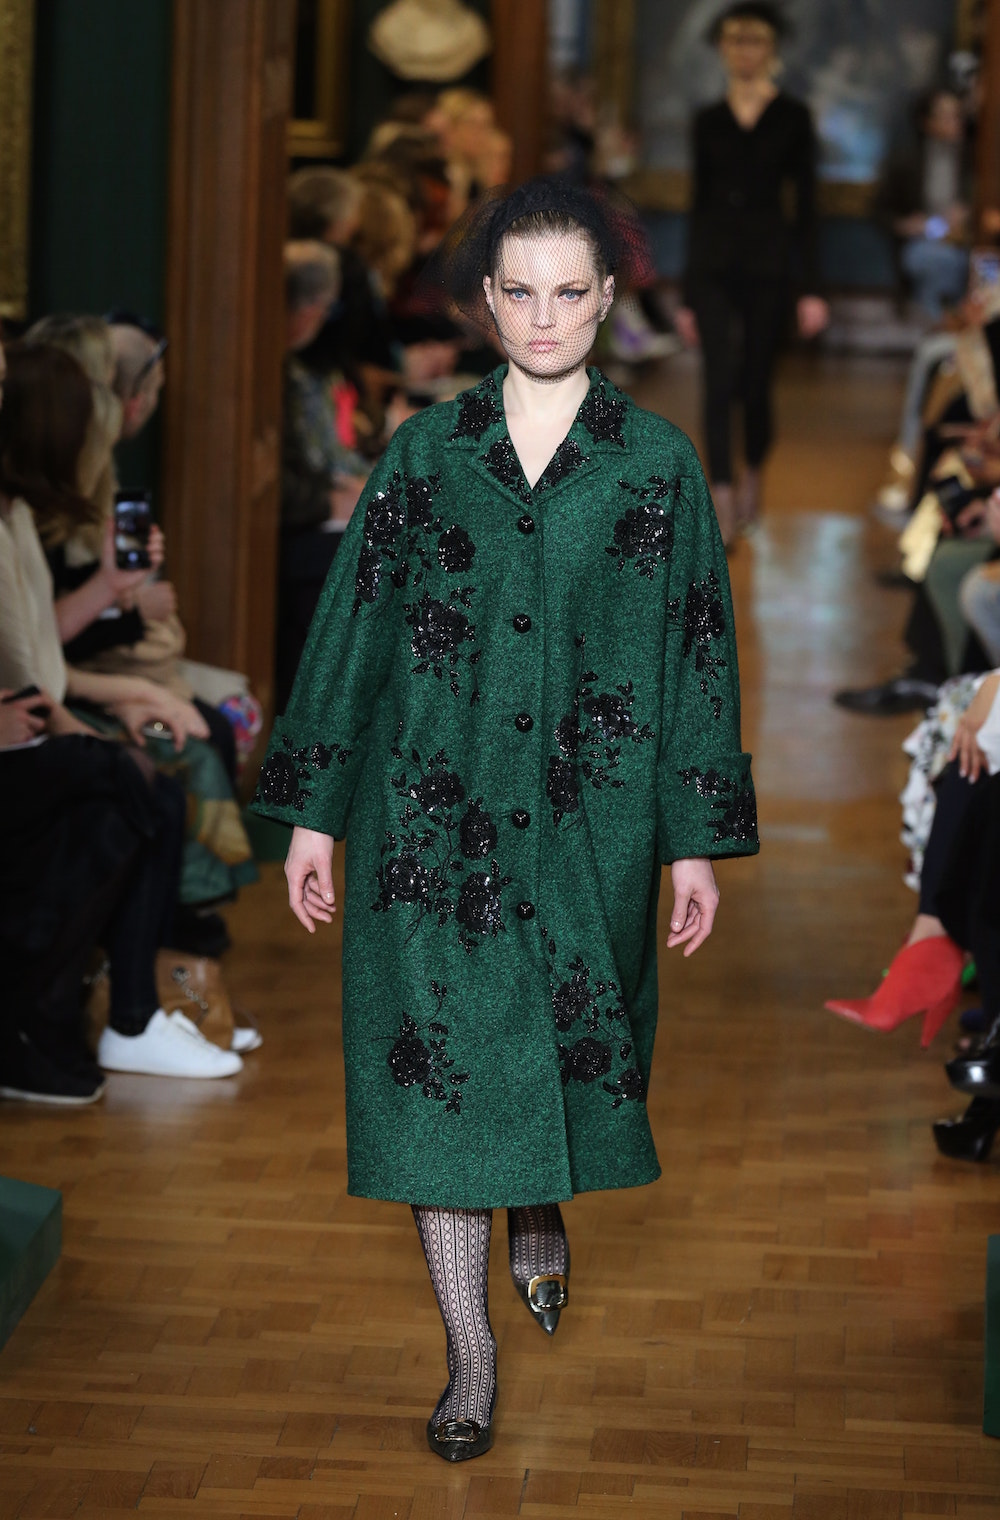 Erdem Autumn/Winter 2019 London Fashion Week show